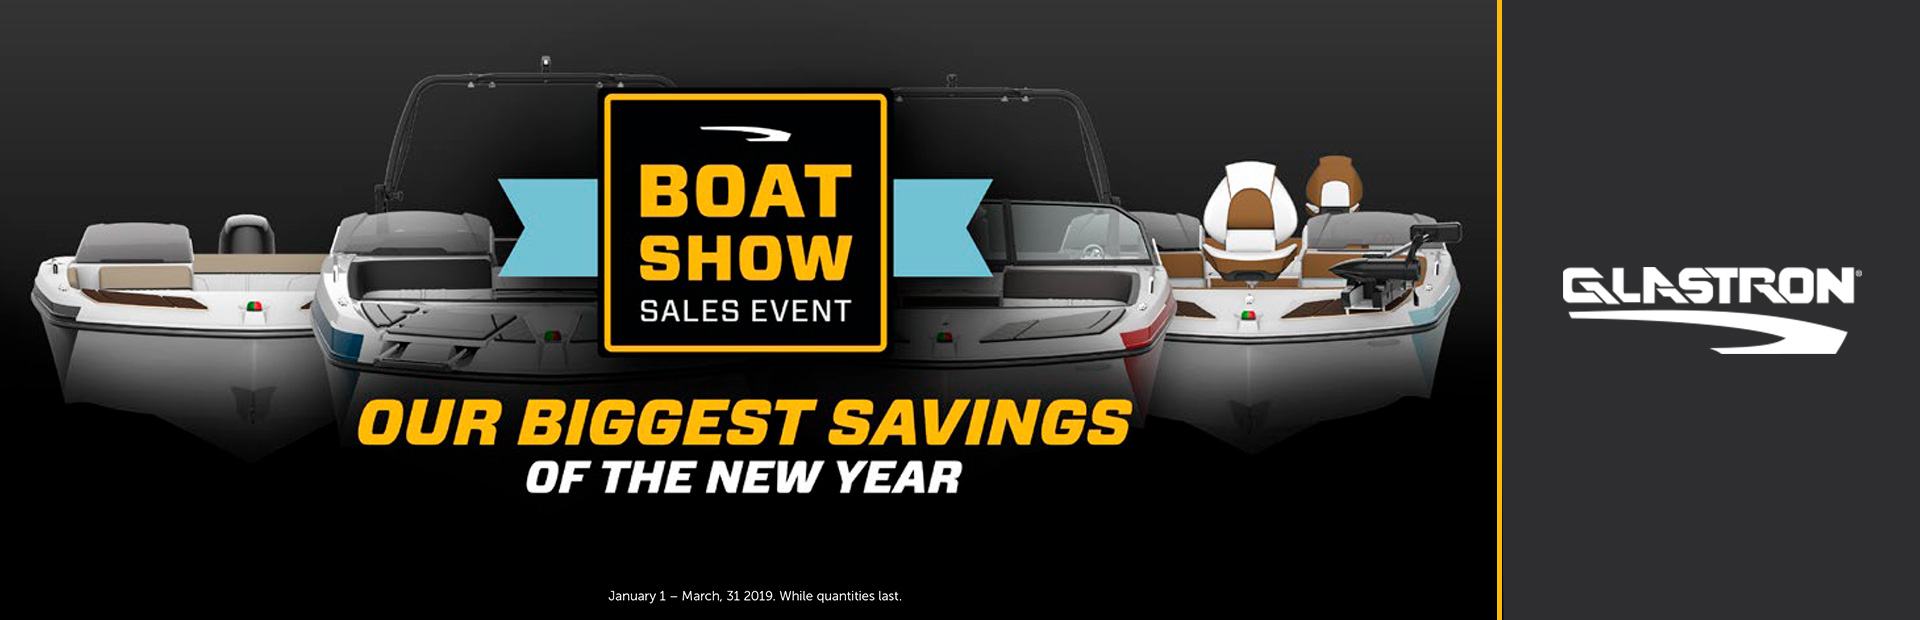 Glastron: Boat Show Sales Event